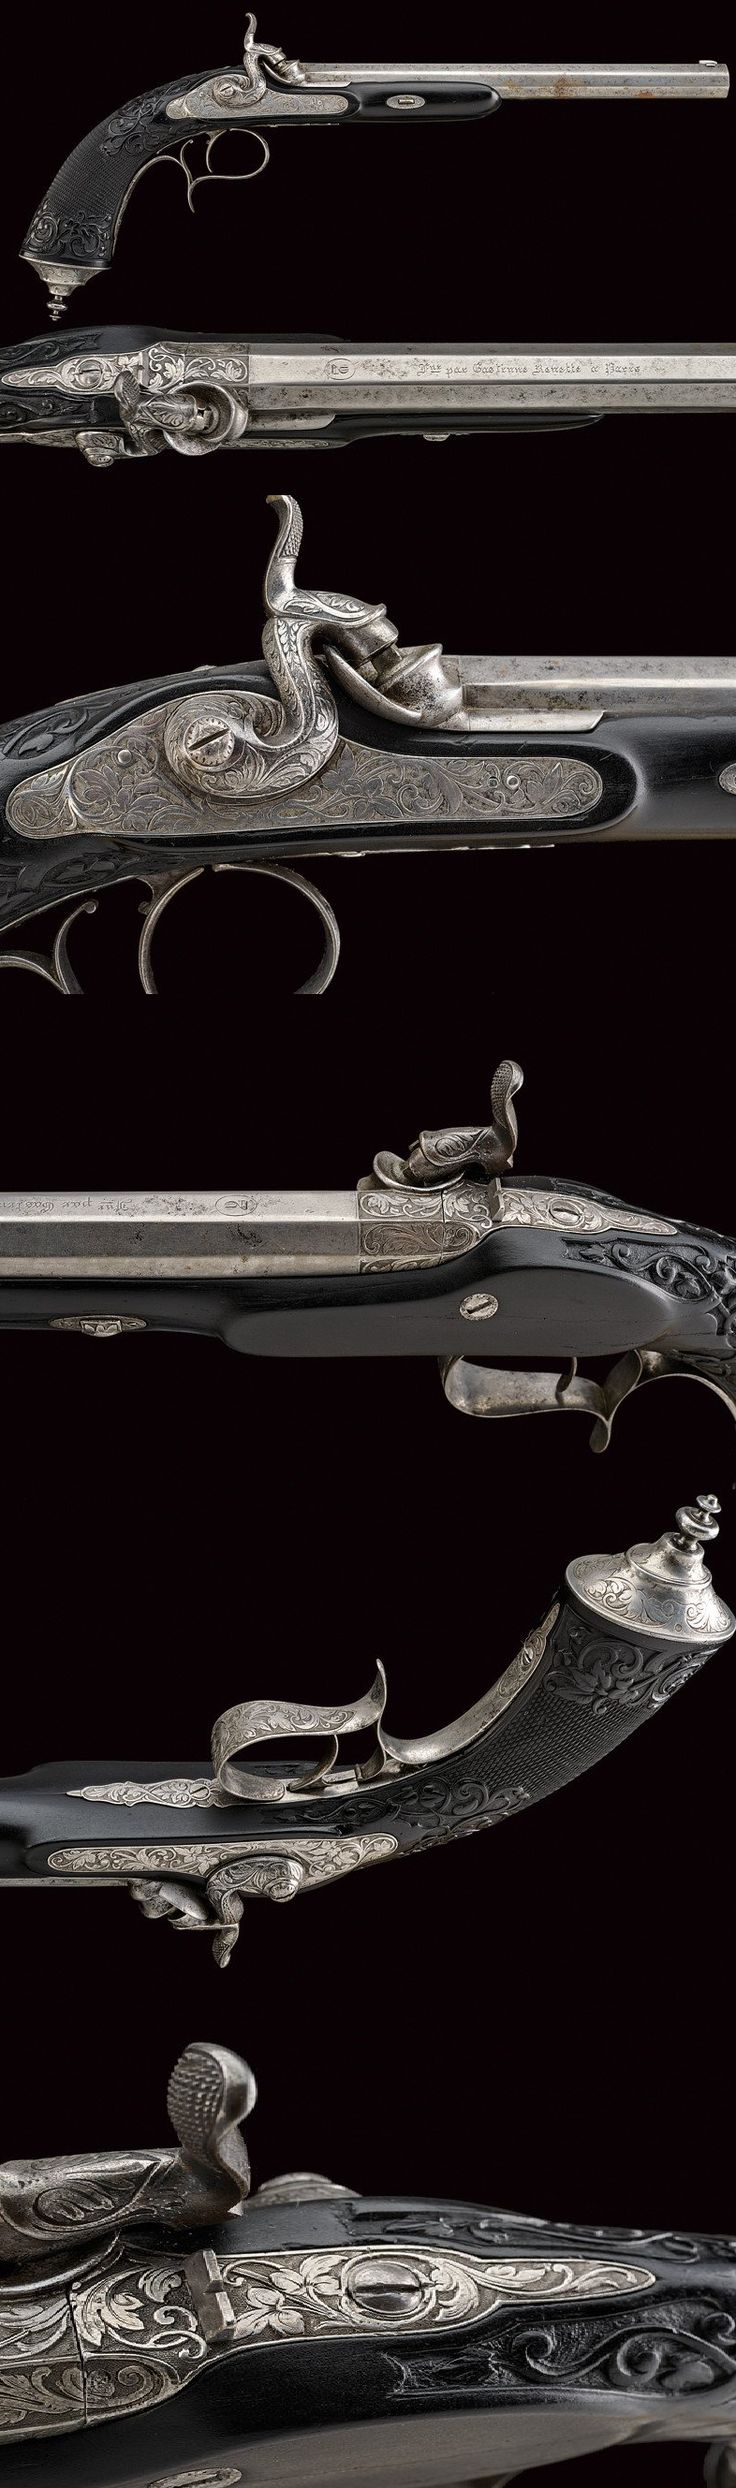 A fine percussion pistol by Gastinne Renette,dating: mid-19th Century provenance: Paris.